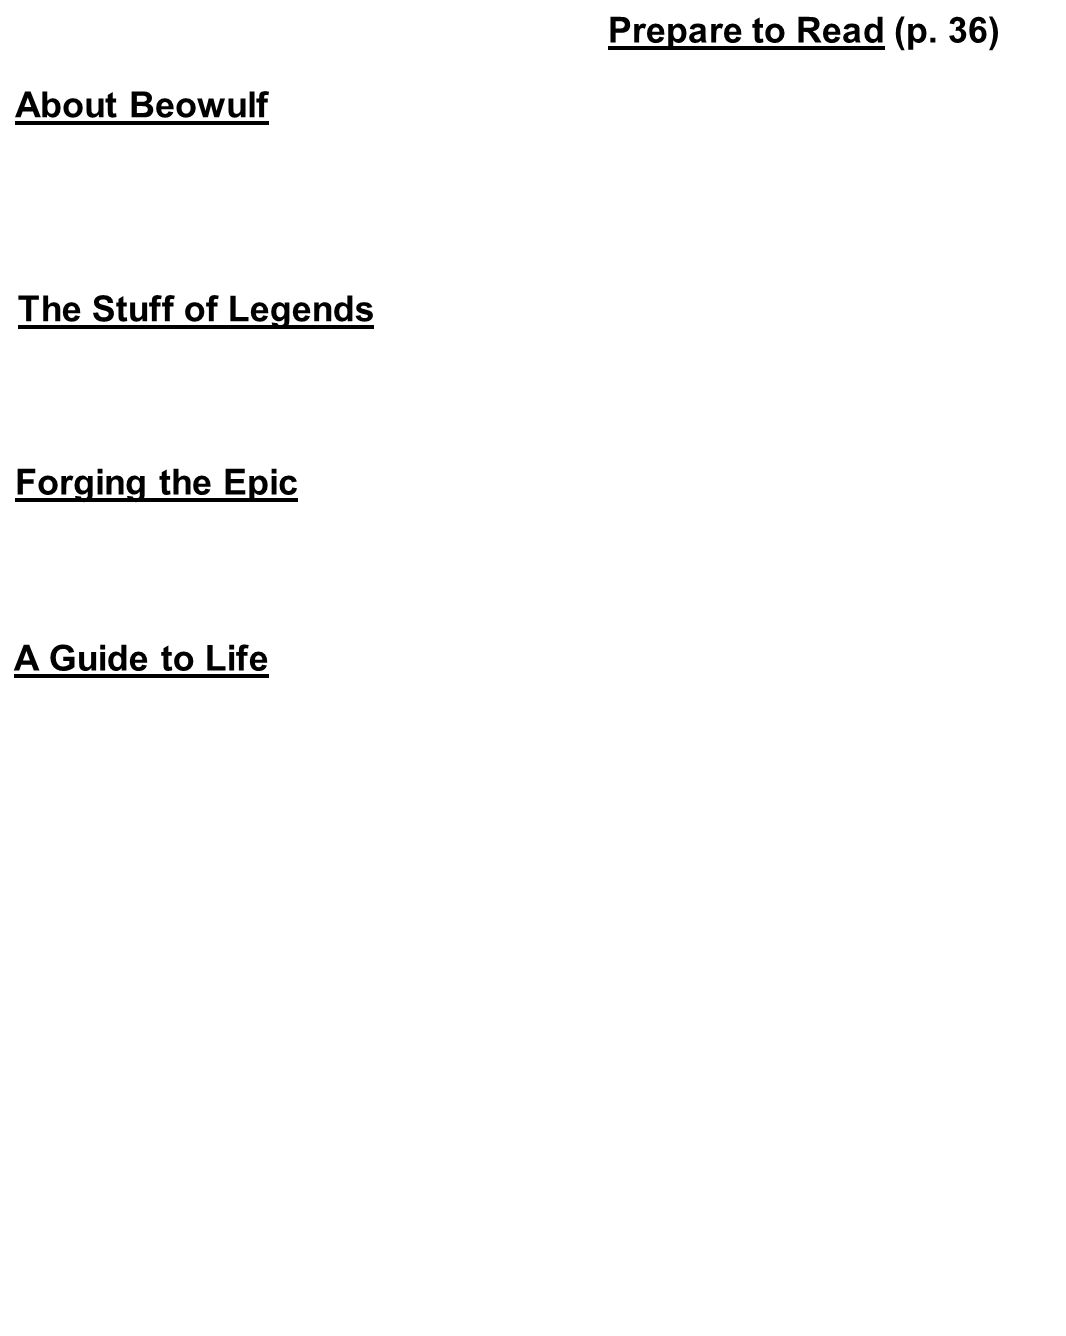 Prepare to Read (p. 36) About Beowulf The Stuff of Legends Forging the Epic A Guide to Life